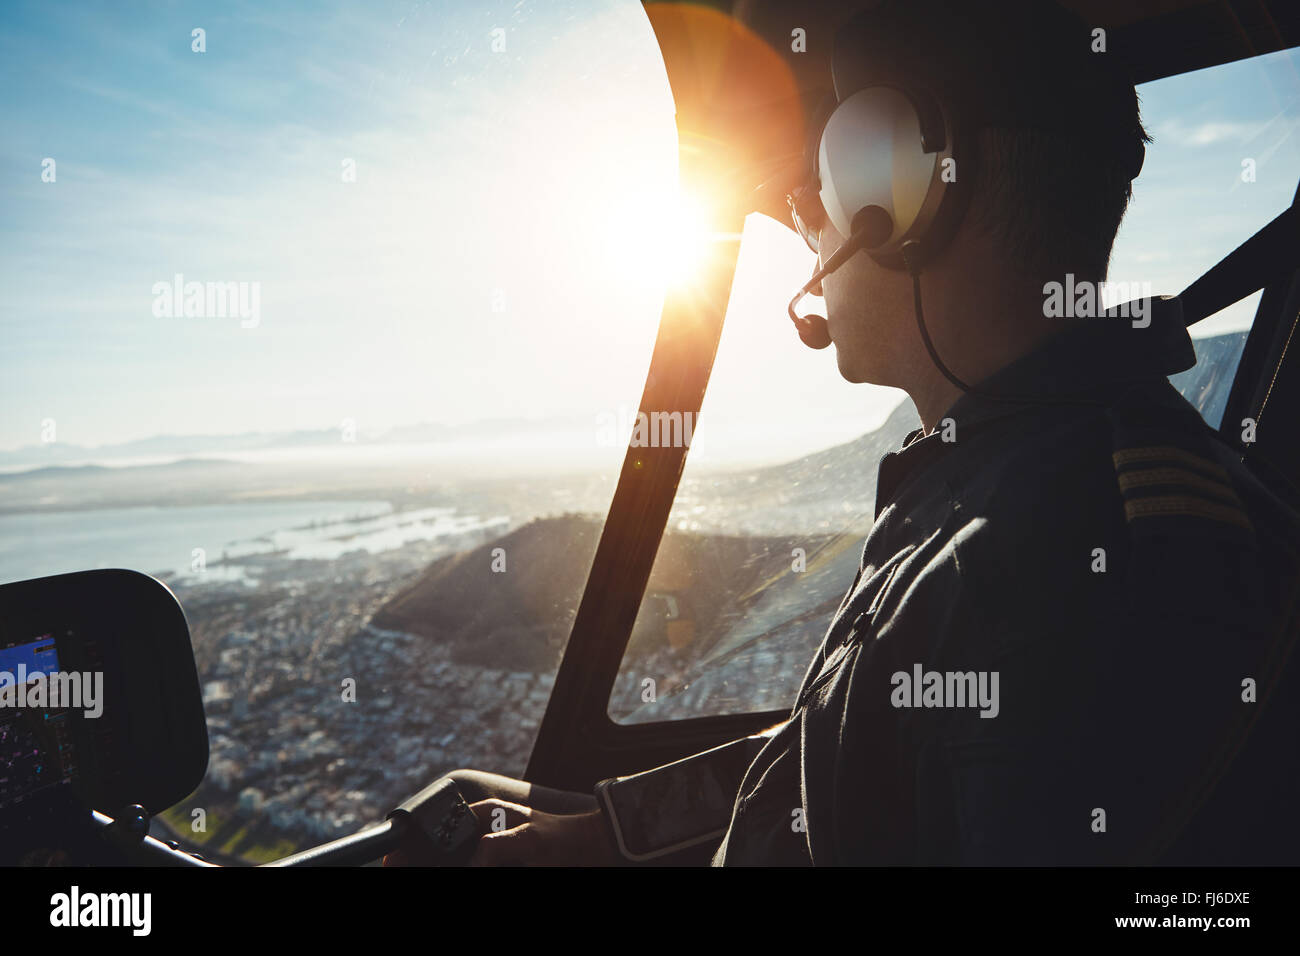 Close up of a helicopter pilot flying aircraft over a city on a sunny day - Stock Image